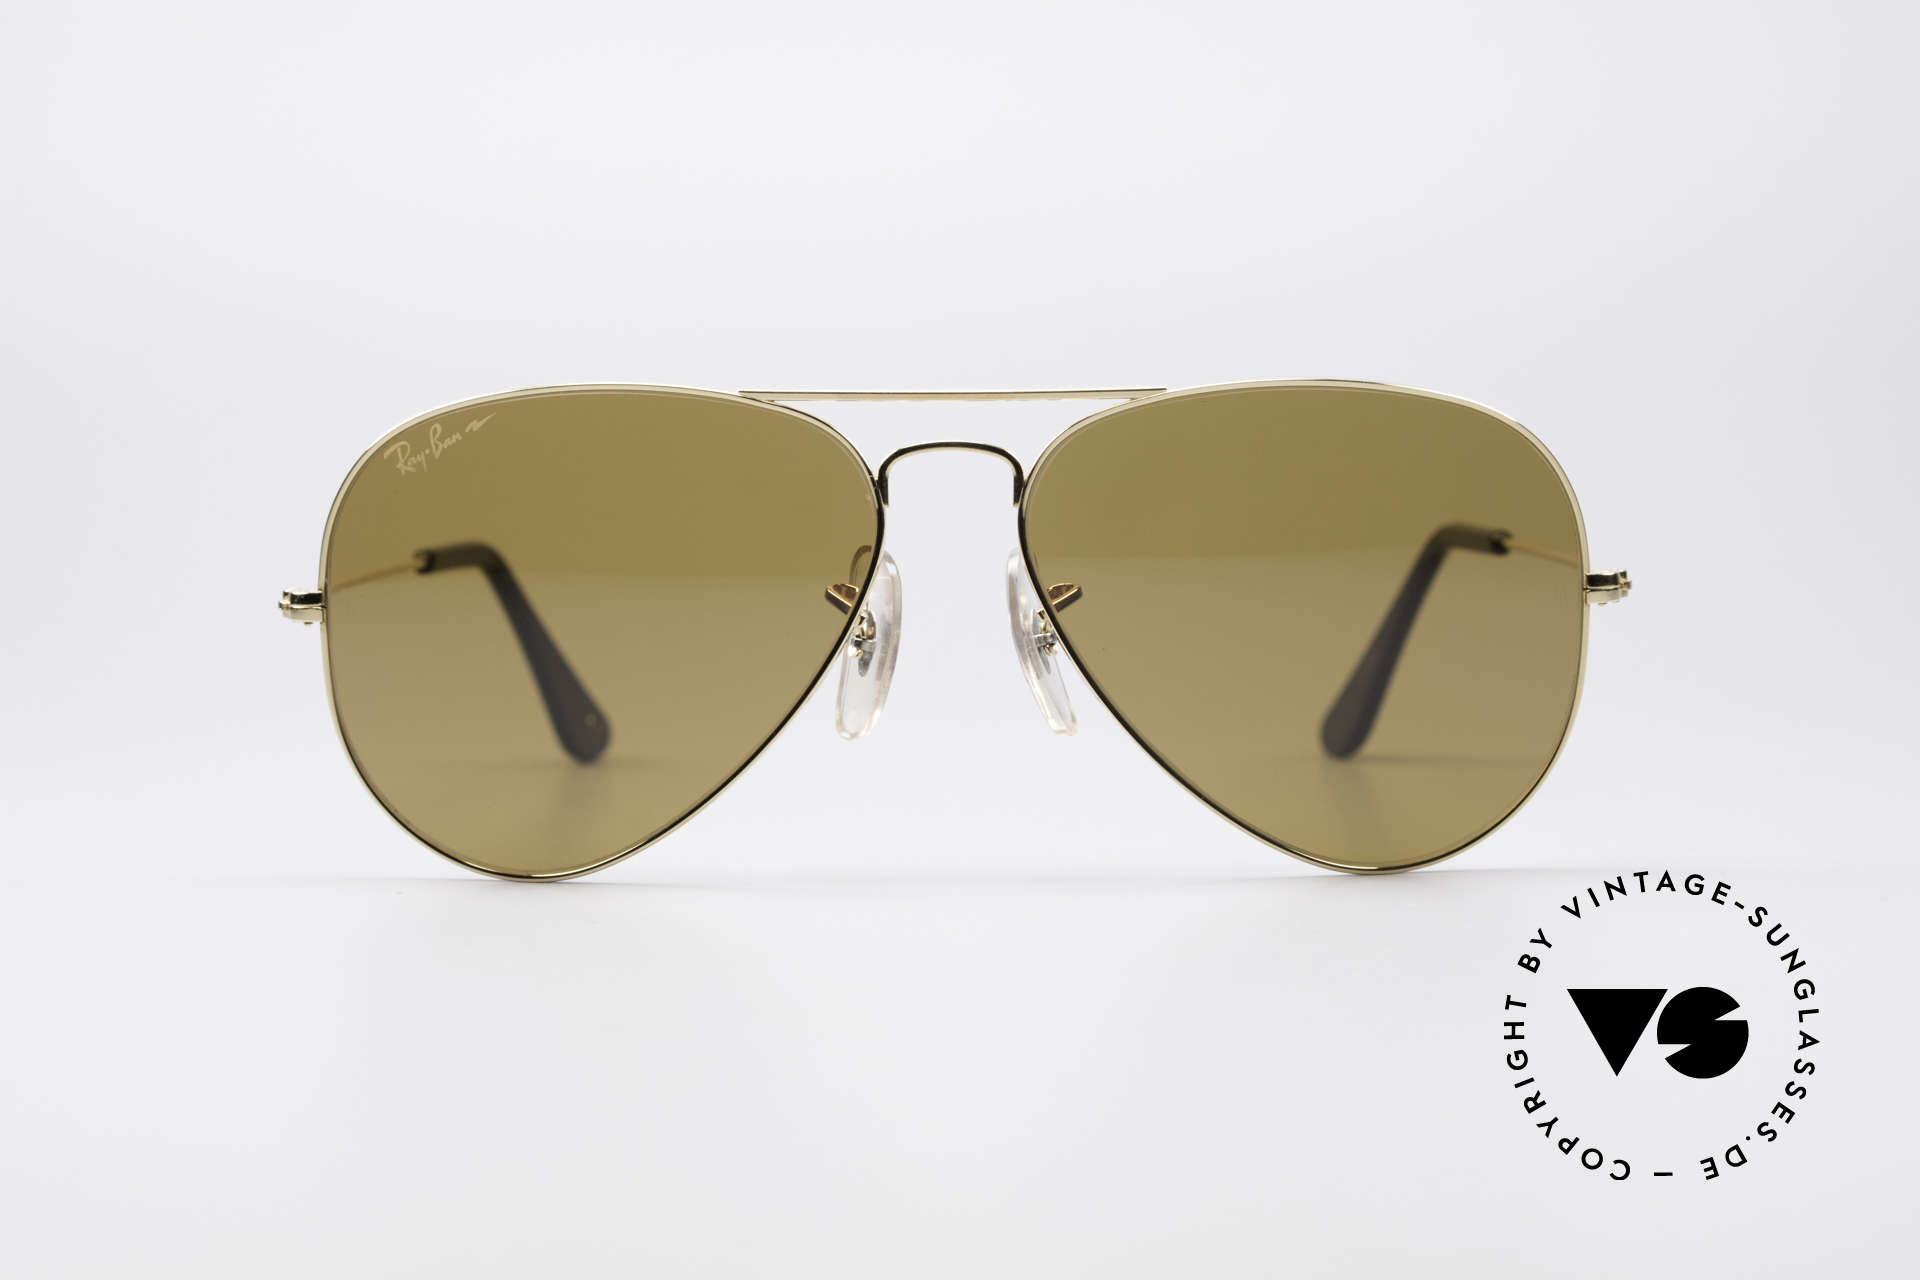 Ray Ban Large Metal Driving Chromax, legendary 80's aviator design in high-end quality, Made for Men and Women